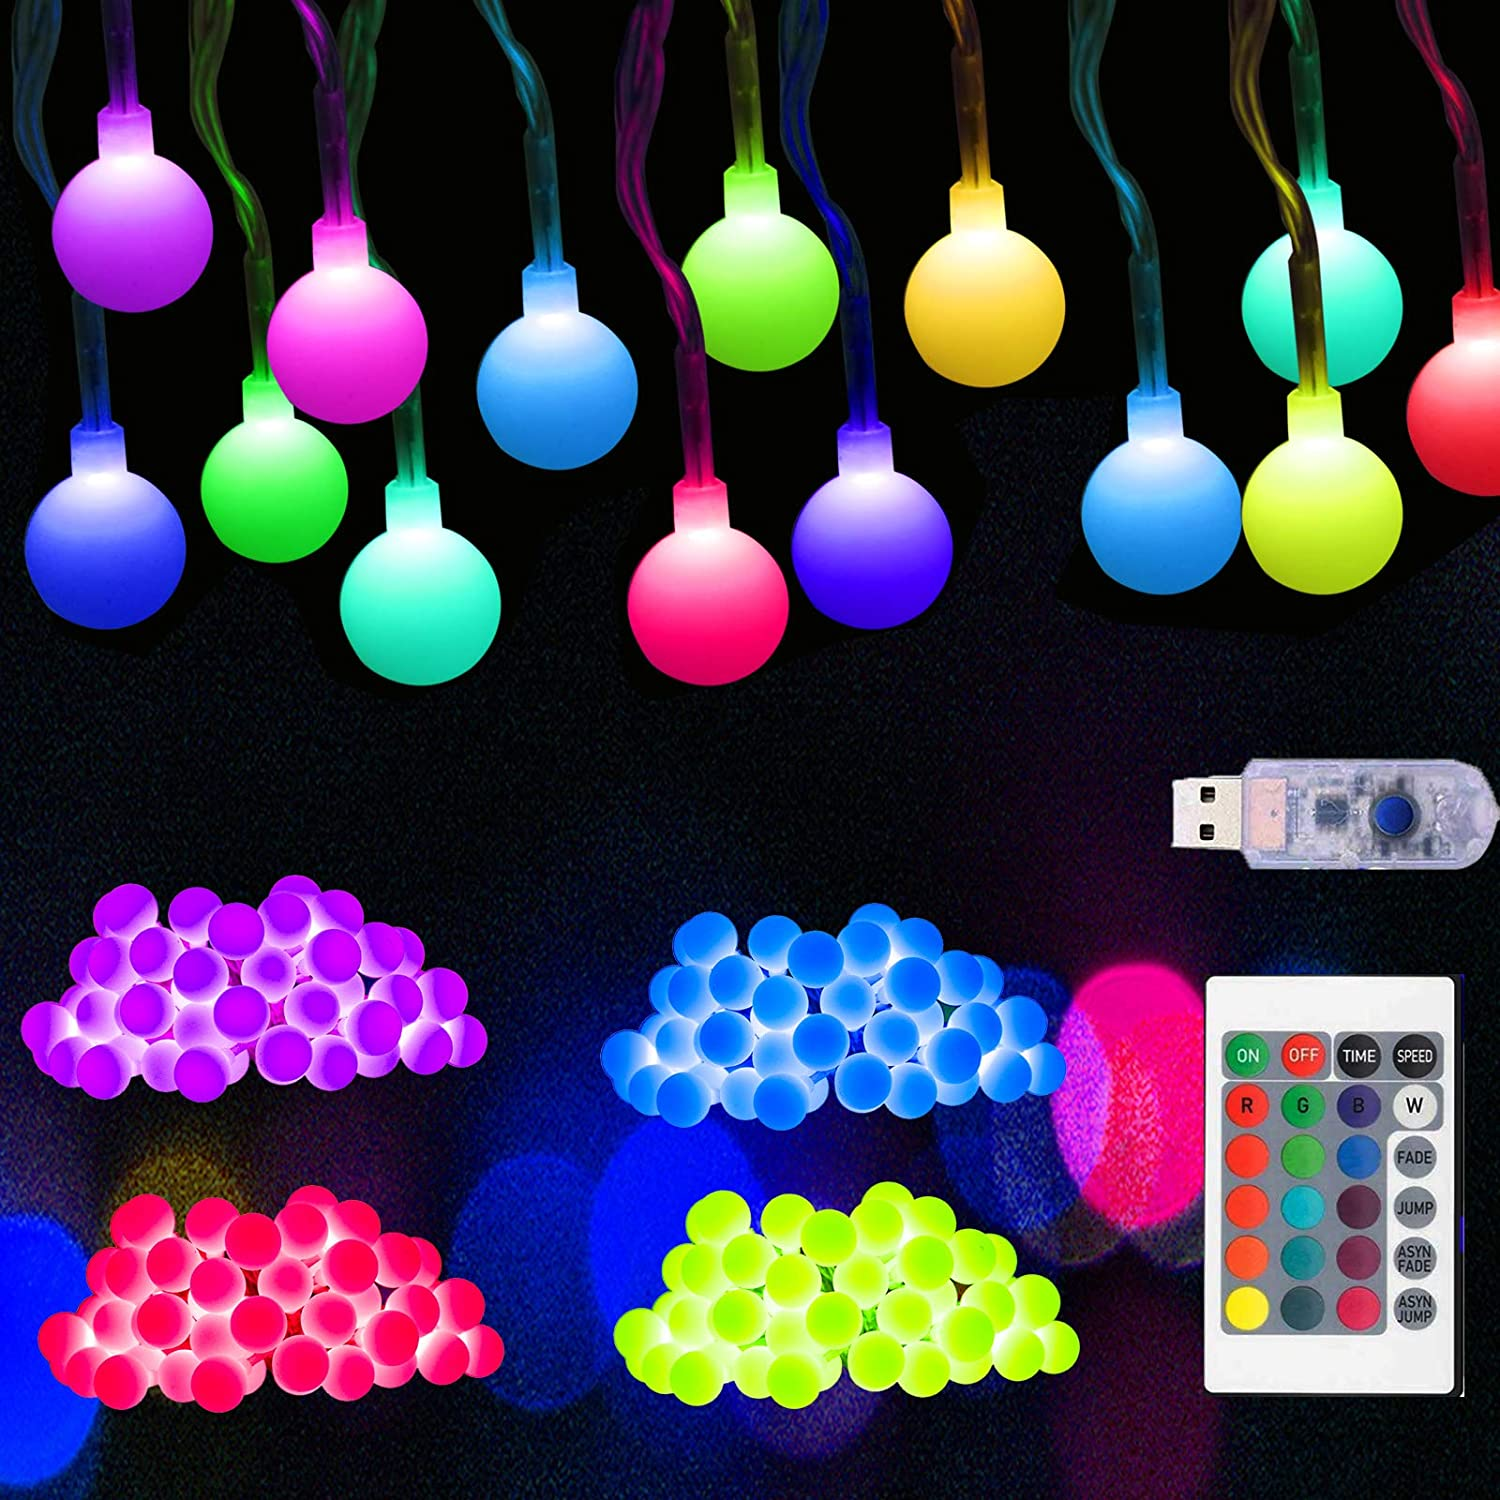 33 FT 50 LED Globe 16 Colors Changing Christmas Lights, USB Powered String Lights Twinkle Tree Lights with Remote, Decor for Indoor Bedroom Xmas Party Wedding